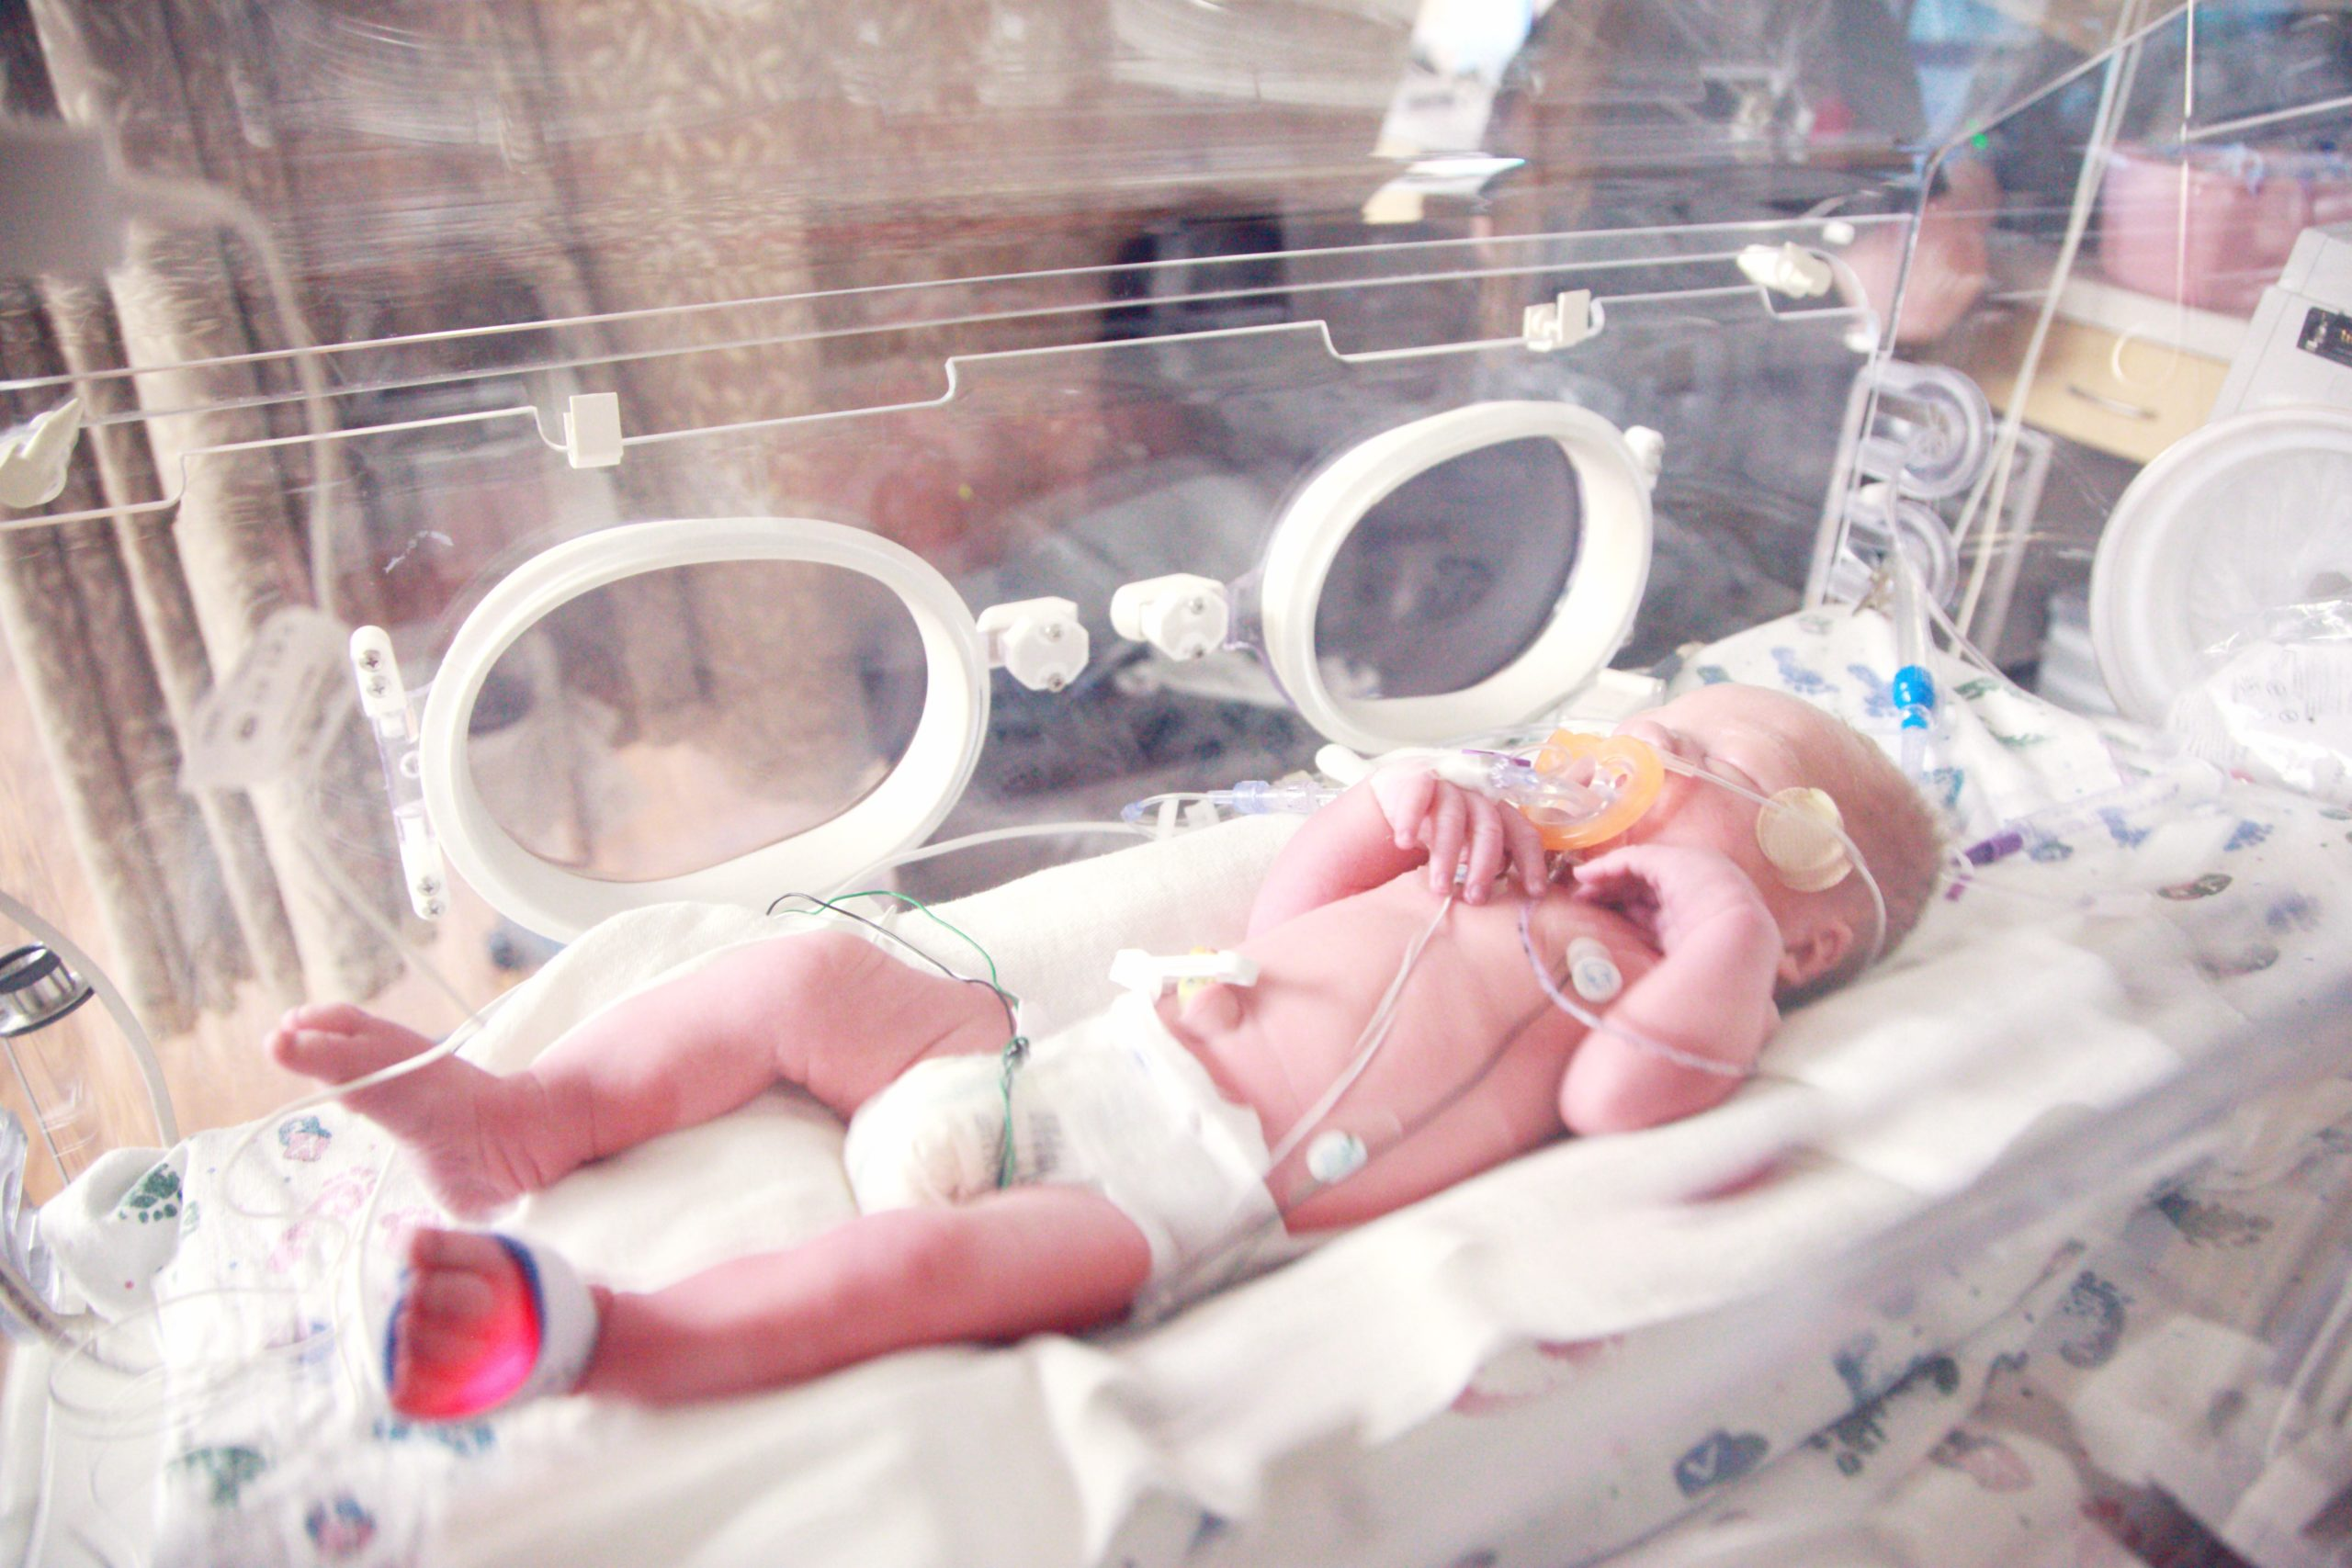 Neonatal Intensive Care Facilities: What You Need To Know